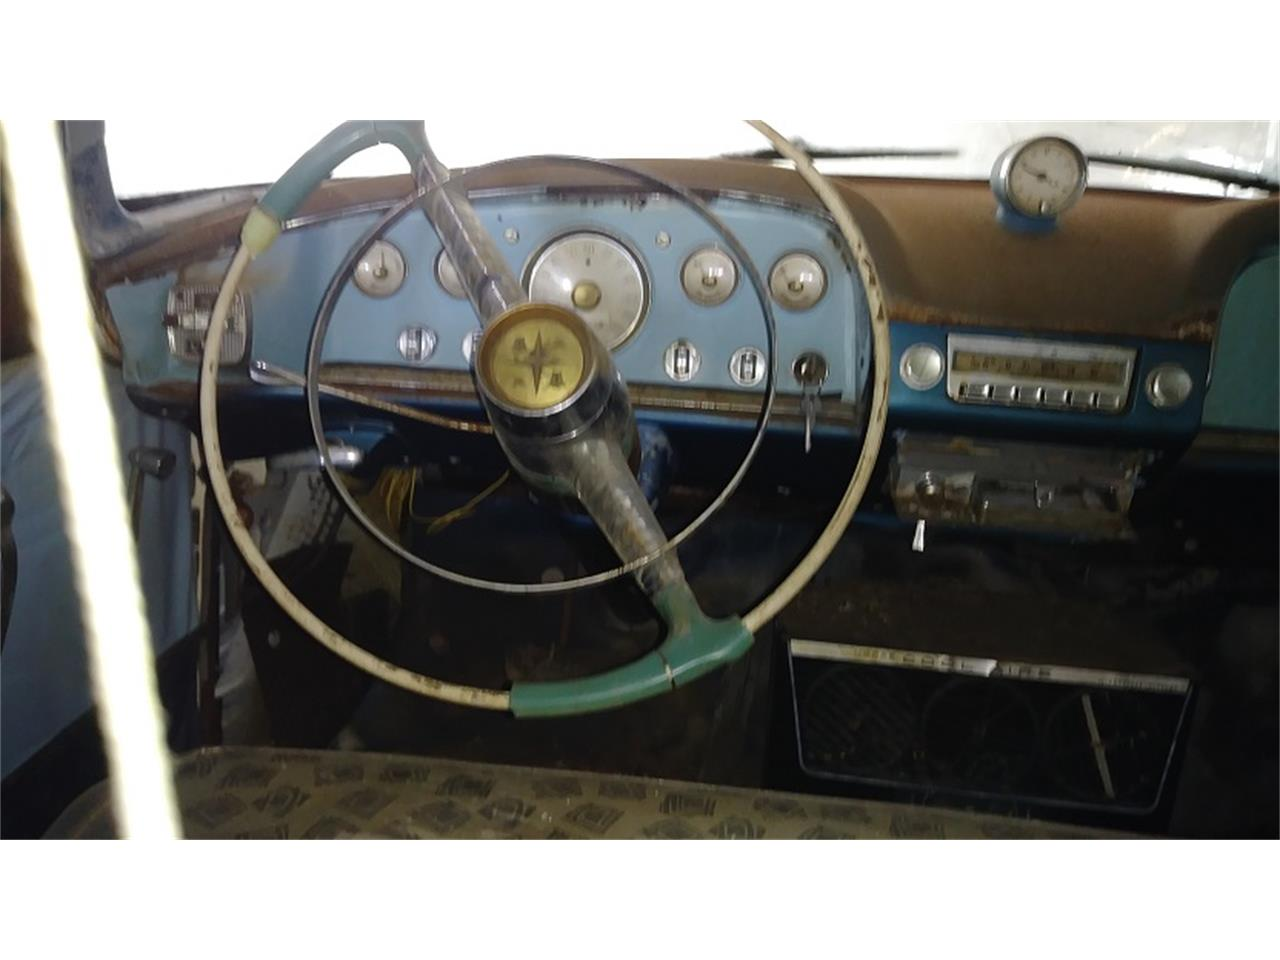 Large Picture of Classic '56 DeSoto Firedome Offered by HZ Smith Motors - M6W1